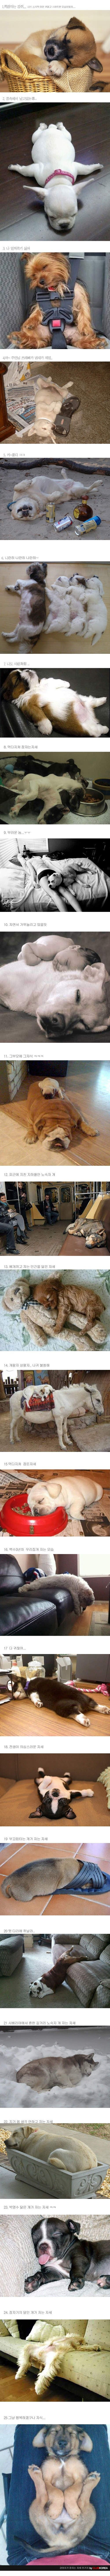 Too flippin cute dogs pinterest dog animal and sleeping